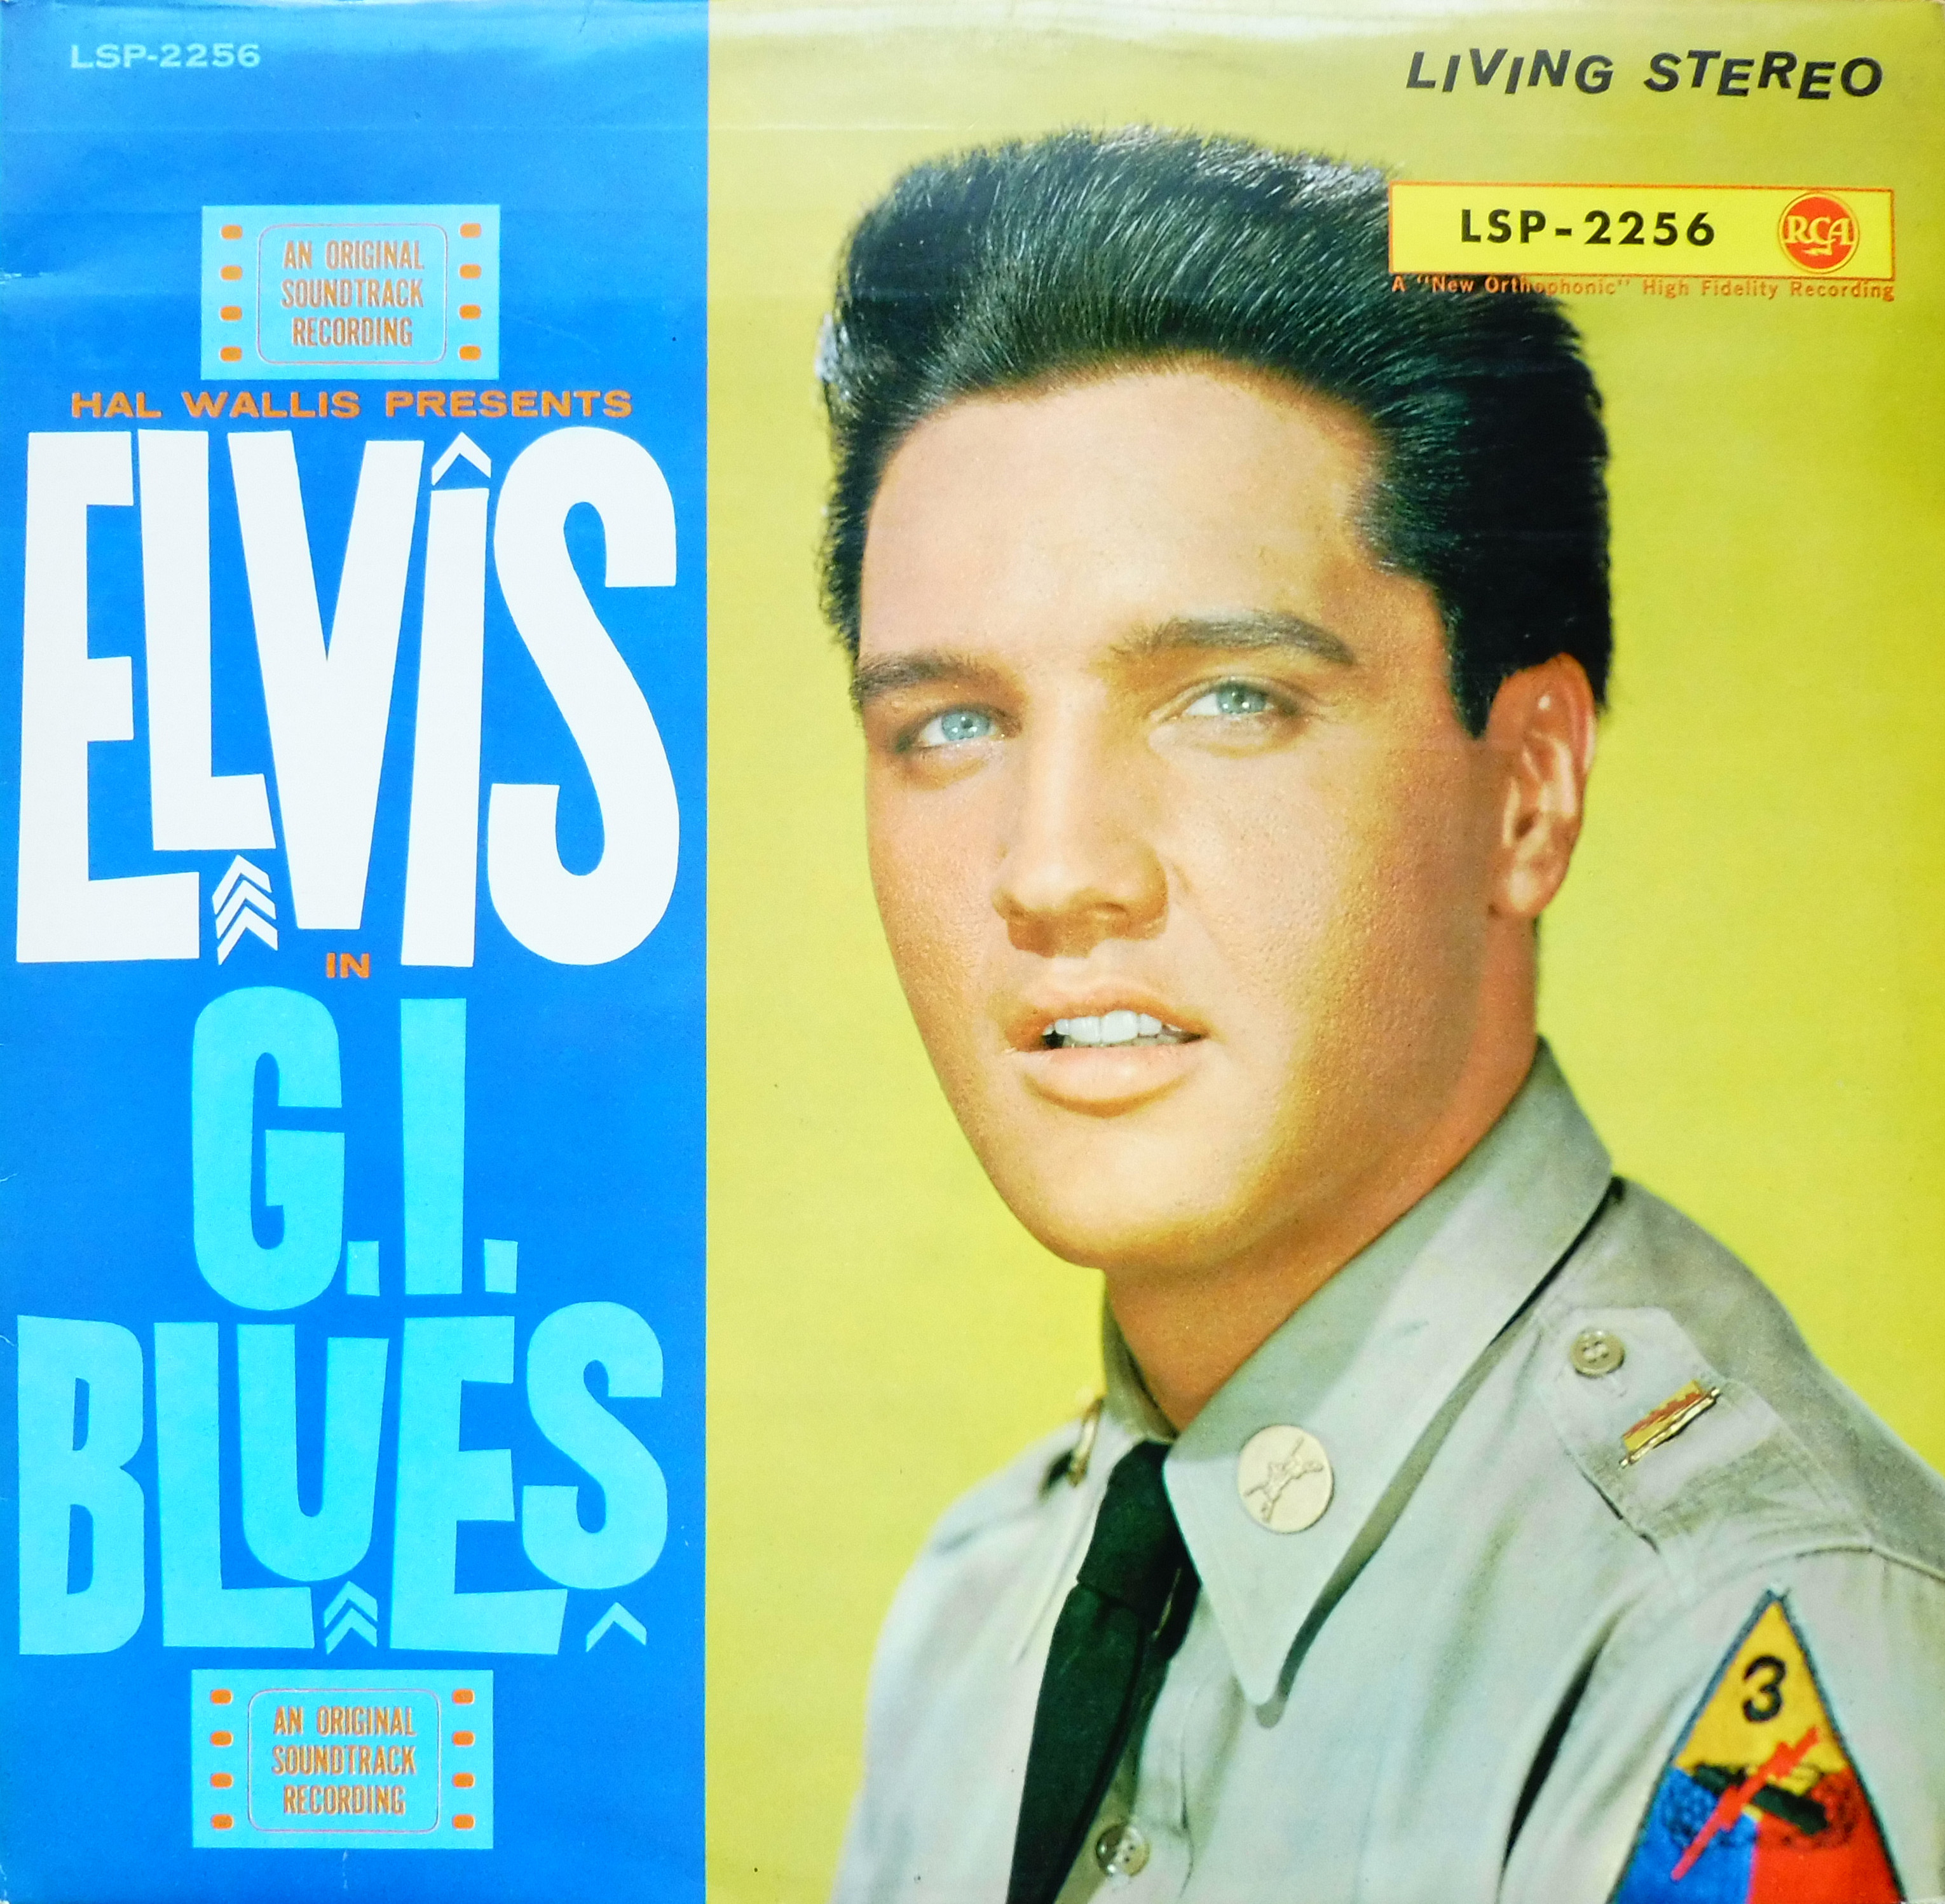 G.I. BLUES Gi60livingstereofrontsbja4